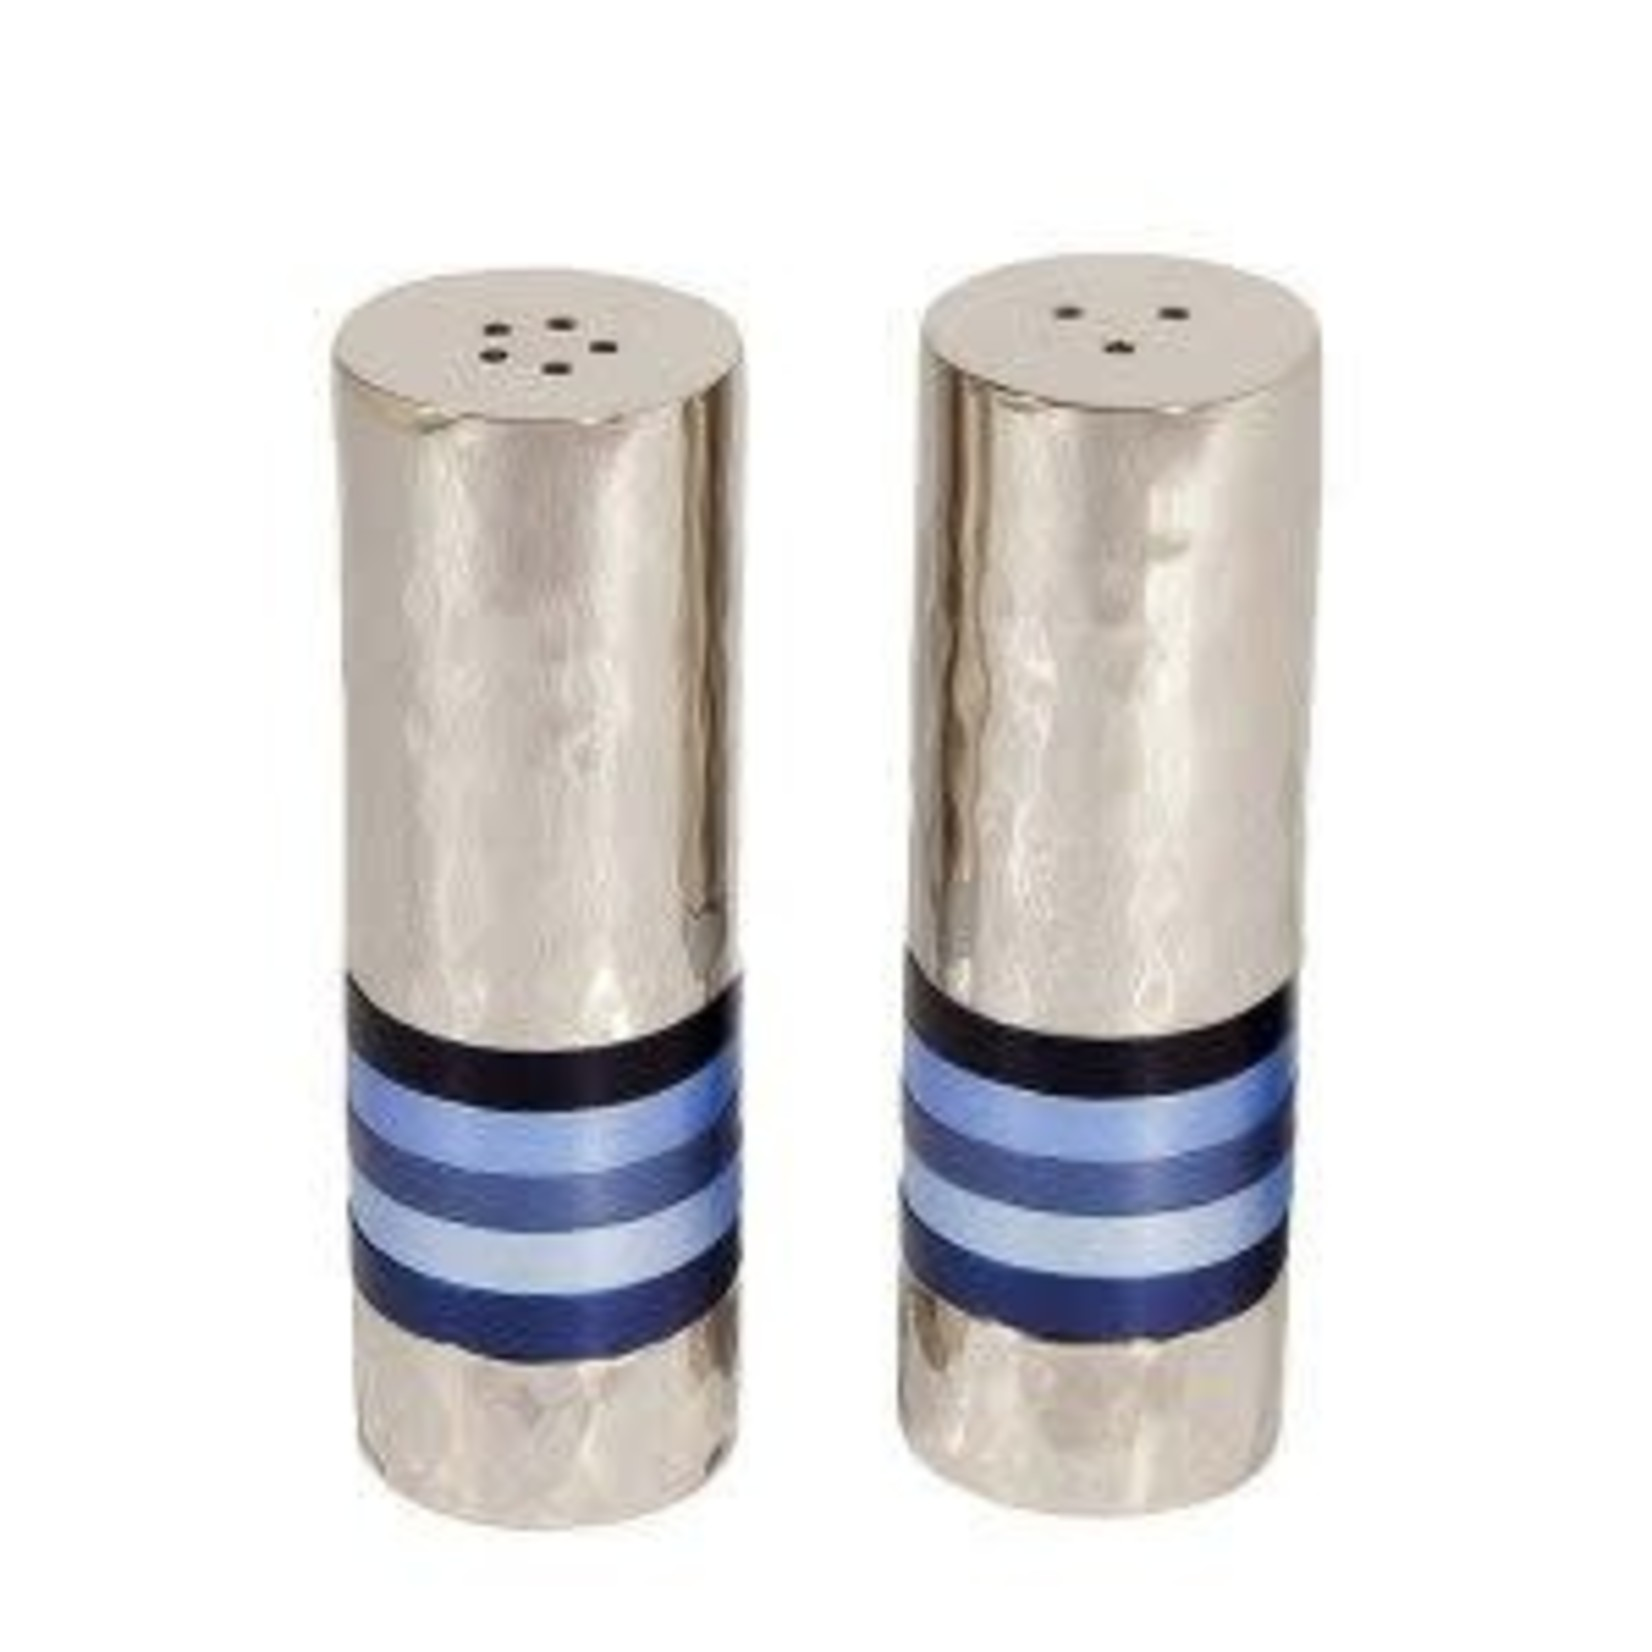 Yair Emanuel Salt and Pepper Shakers, Aluminum